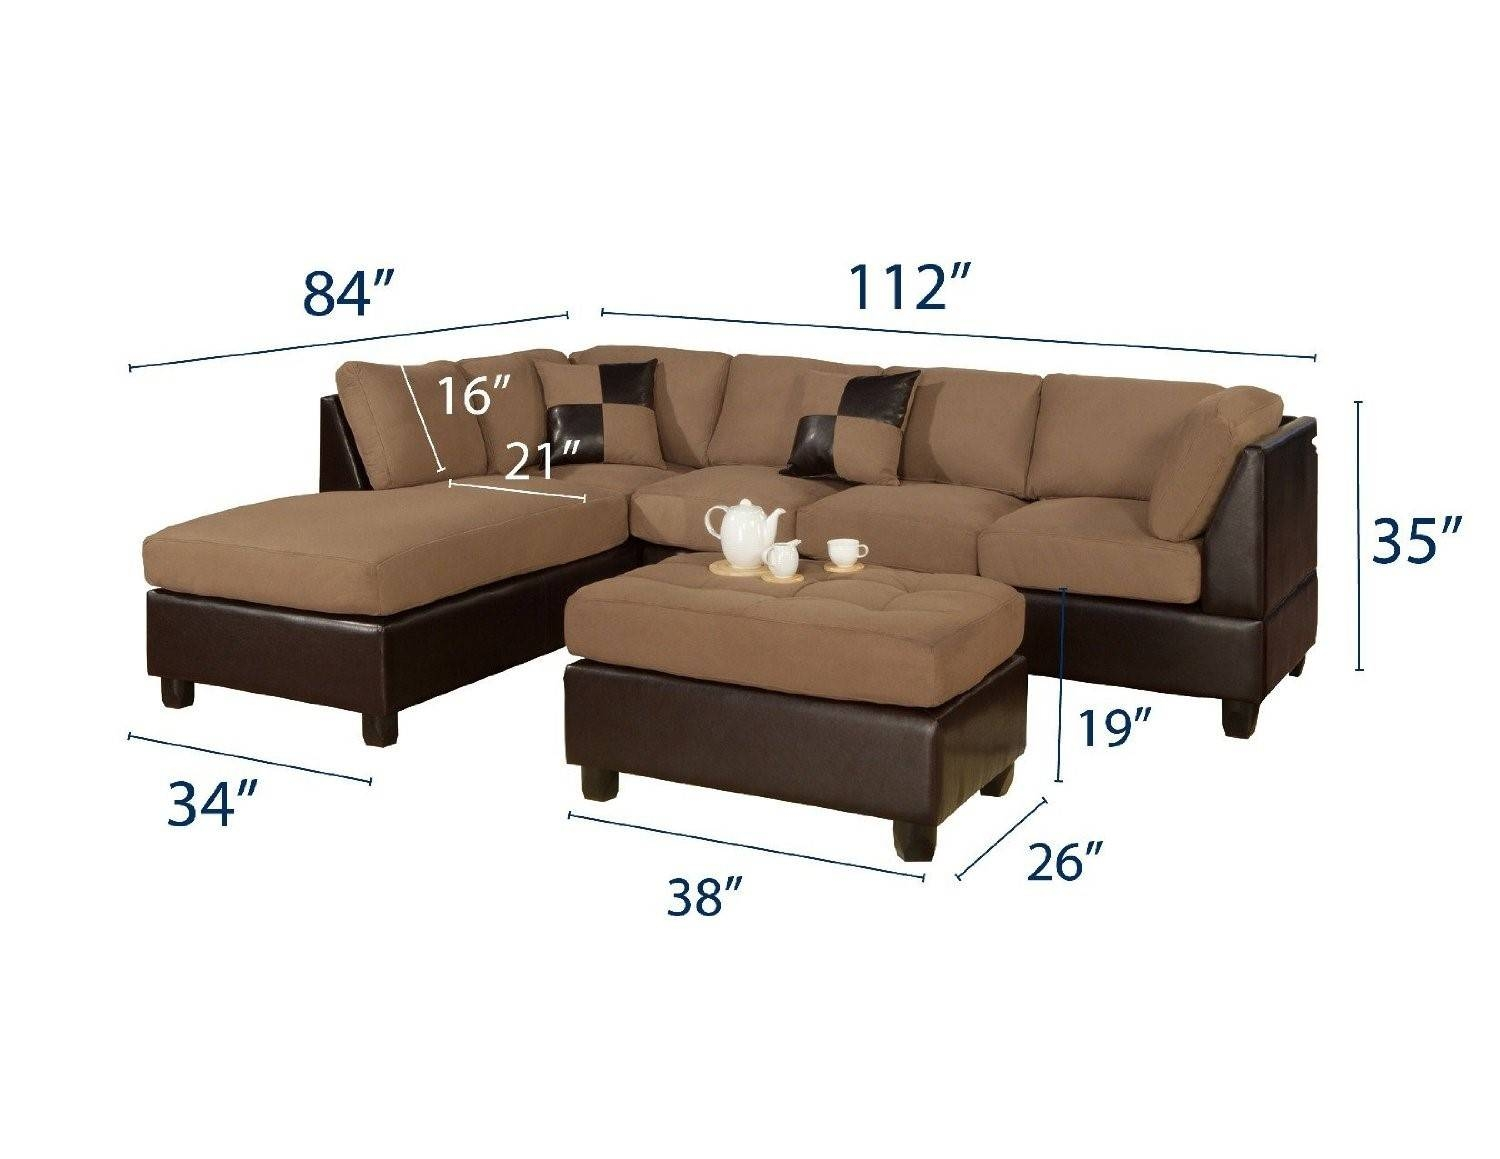 Sectional Sofa Craigslist With Ideas Design 30949 | Kengire In Craigslist  Sectional Sofa (Image 20